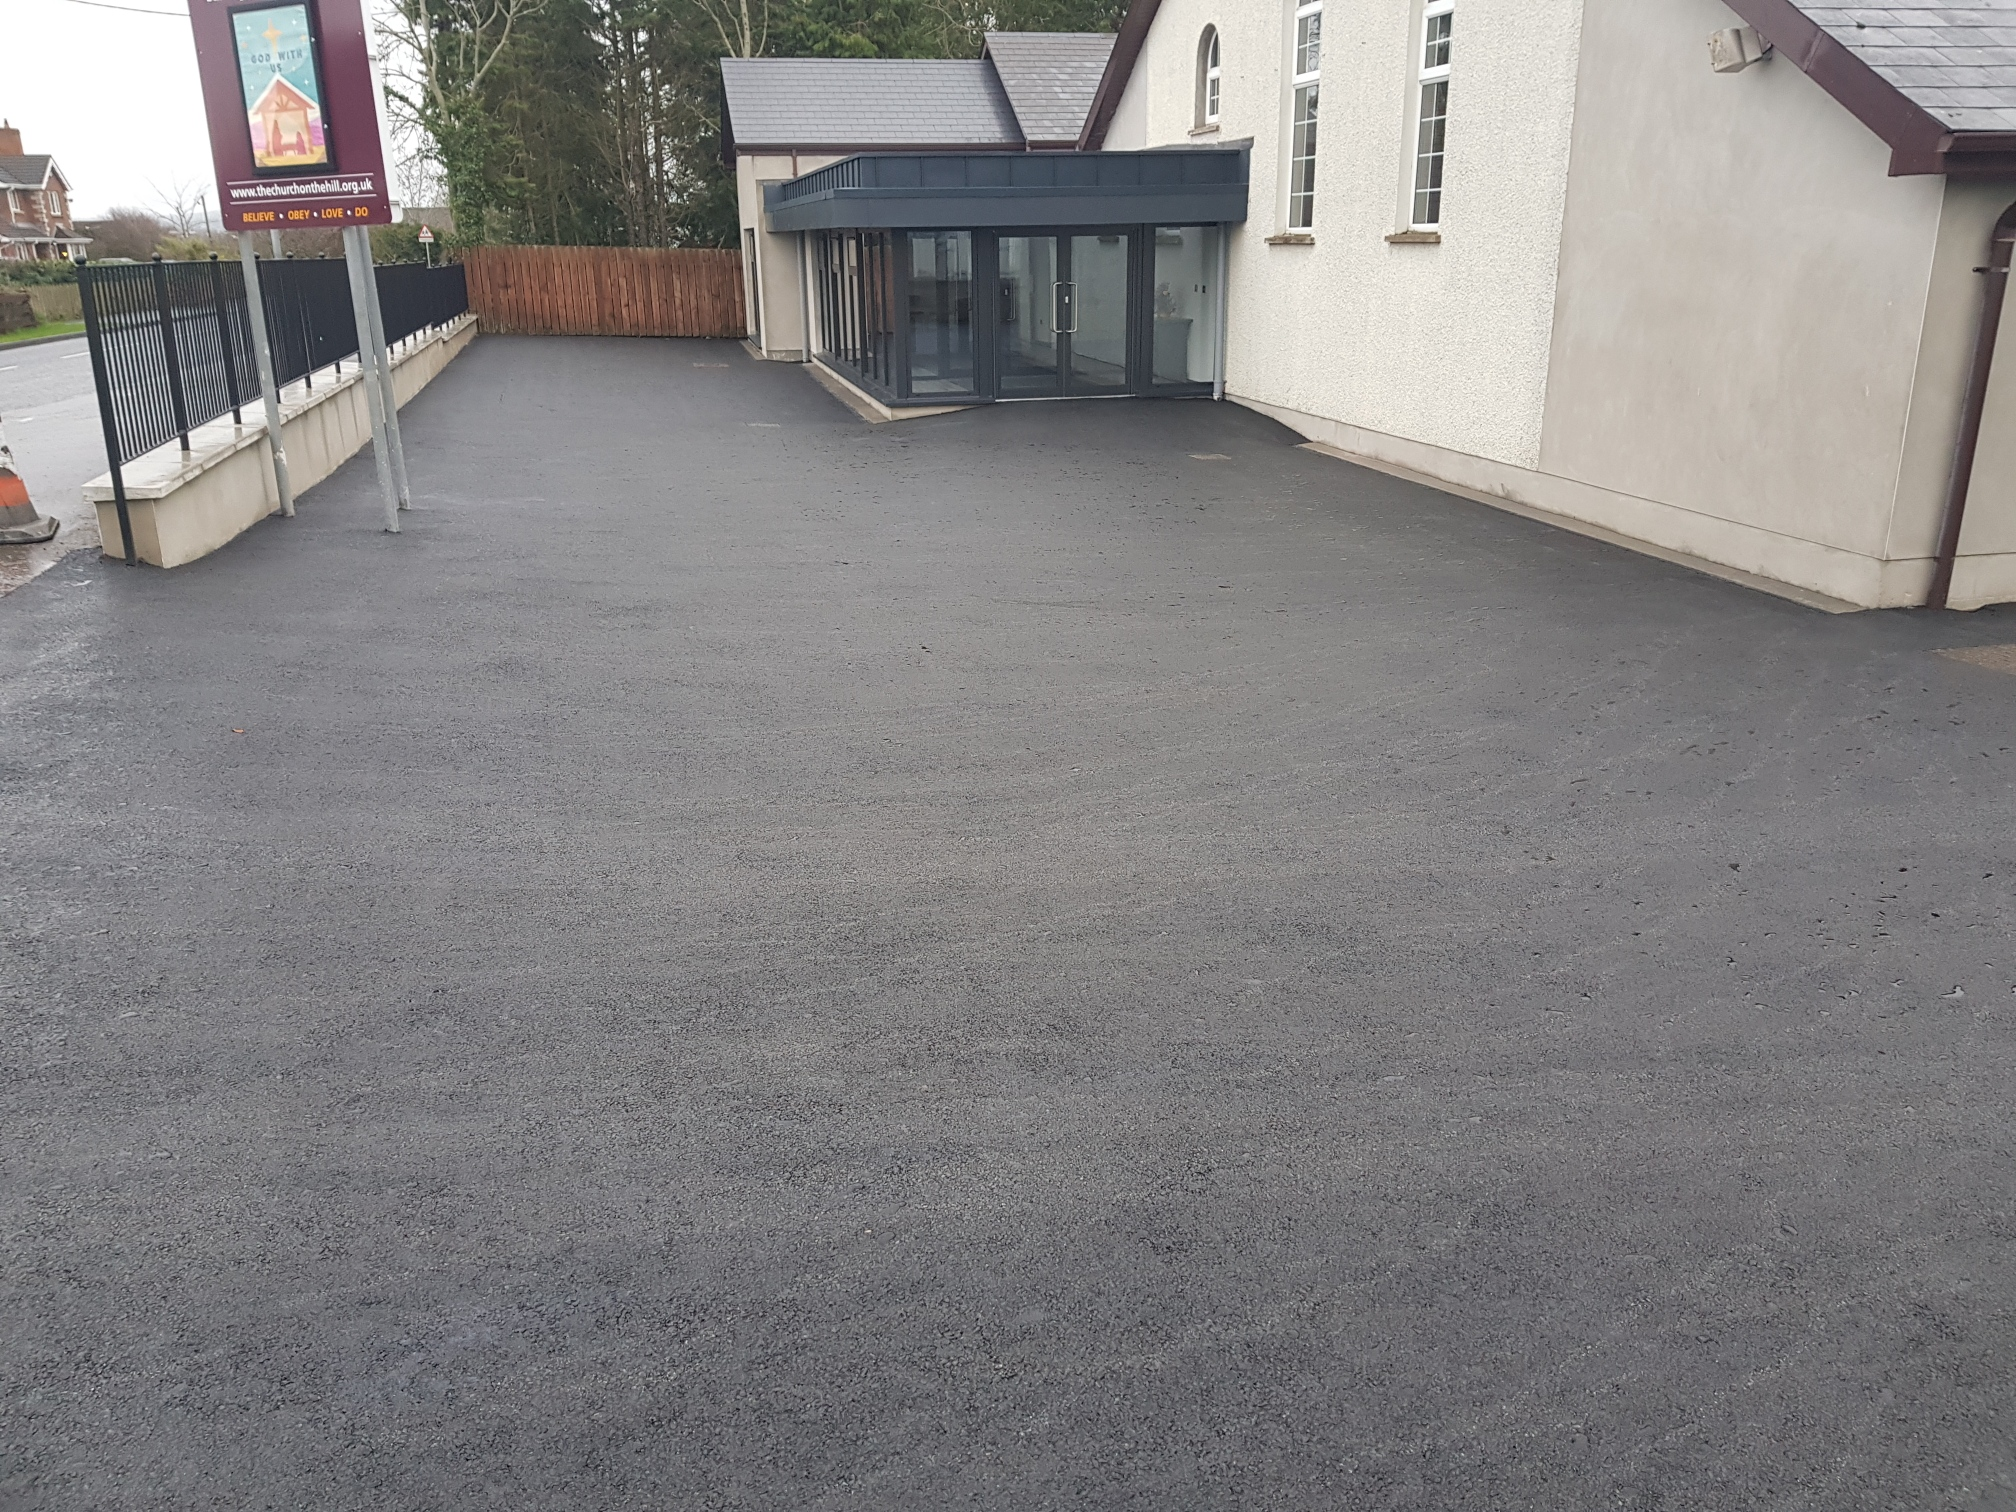 Commercial surfacing 10mm Bitmac